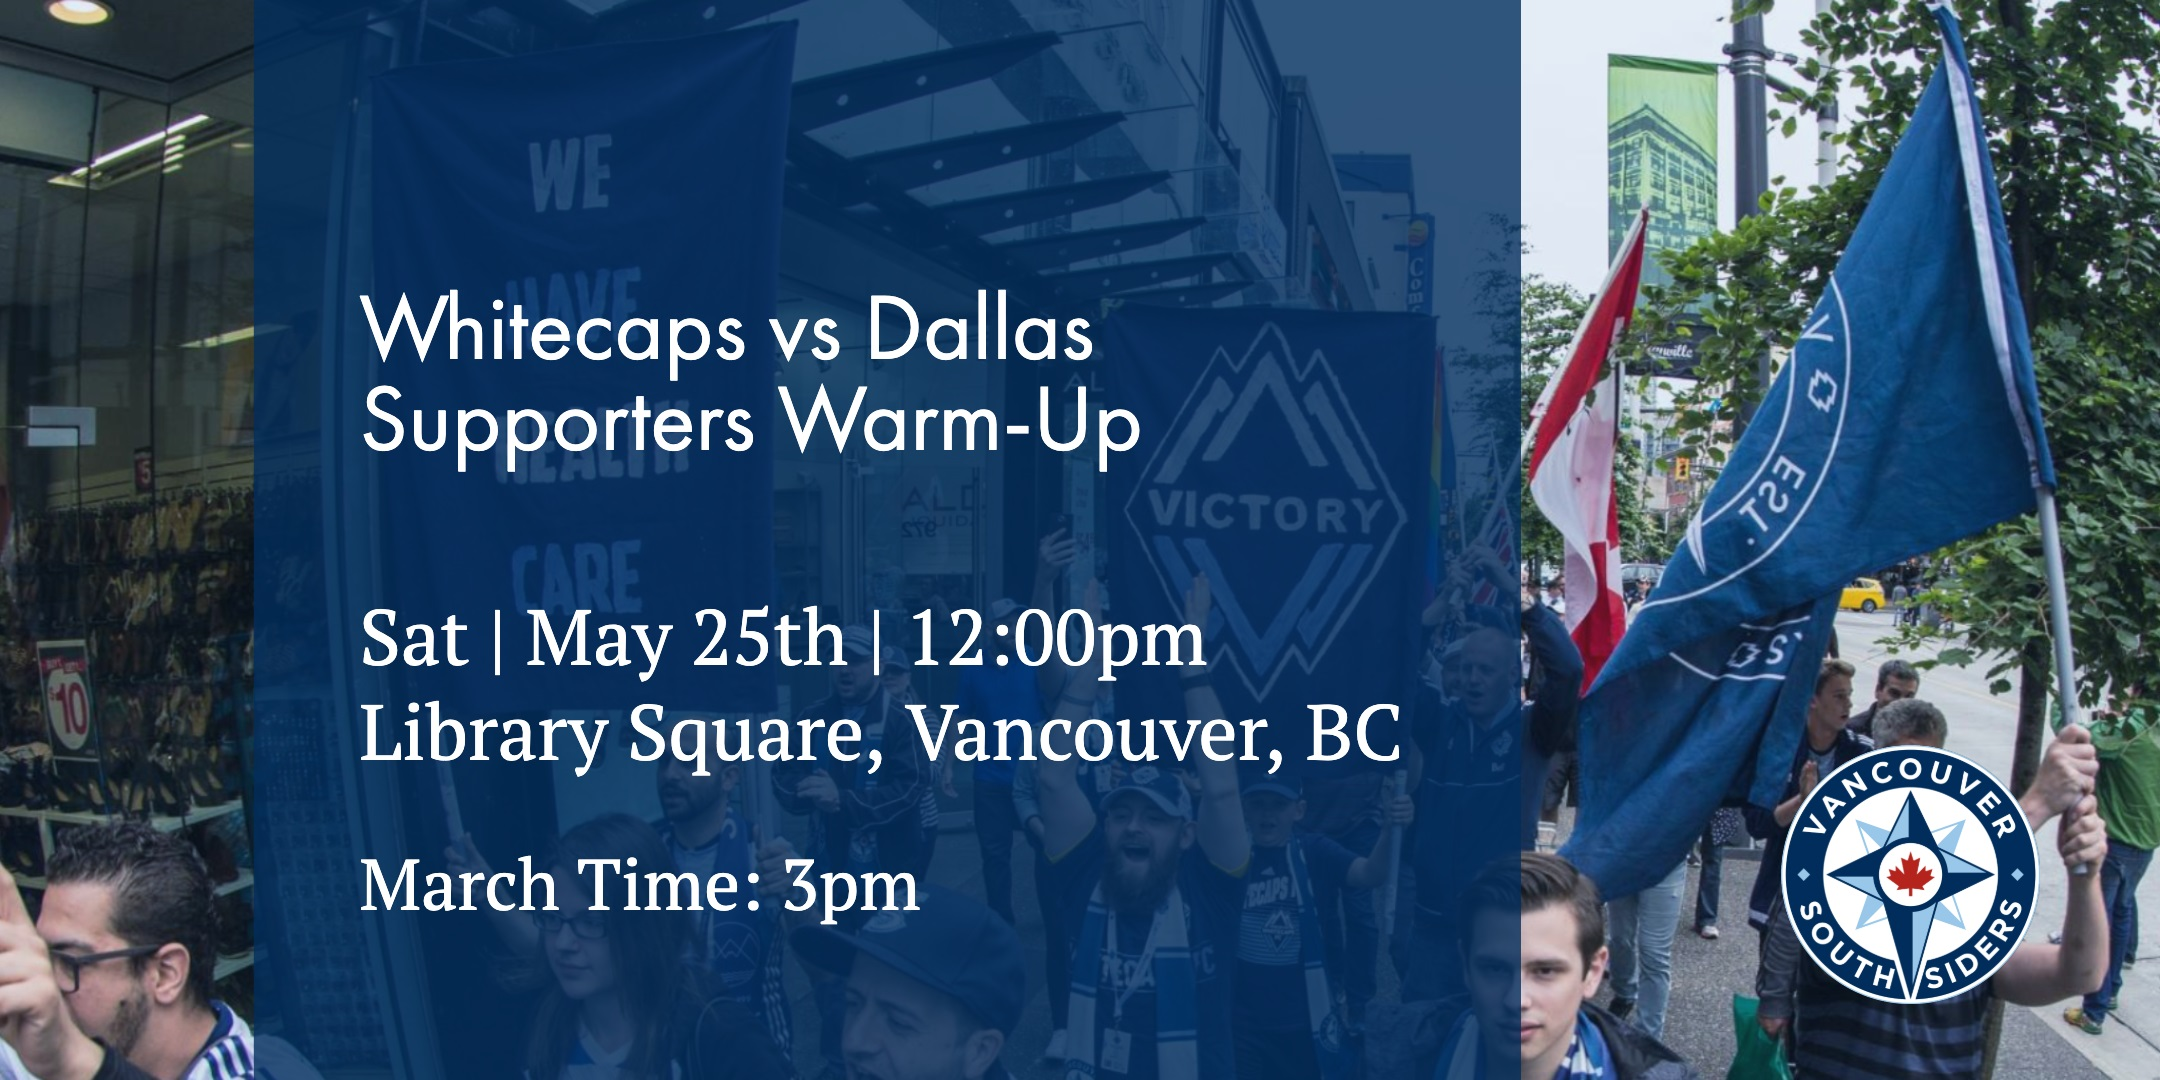 Whitecaps vs Dallas, Saturday, May 25th. March time 3pm